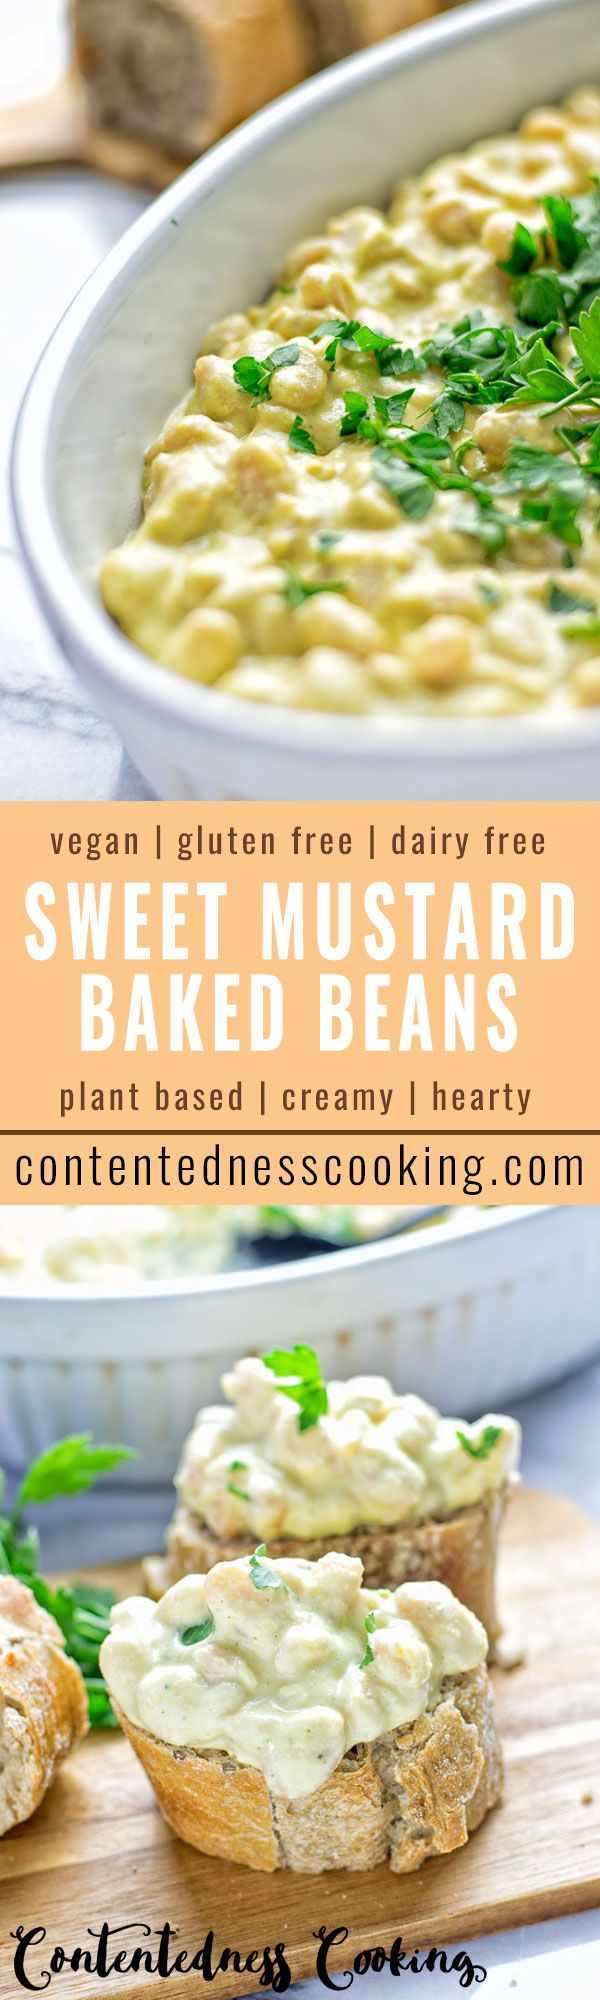 Easy to make at home: Sweet Mustard Baked Beans. Amazingly satisfying, they are full of incredible flavors, super tasty, entirely vegan and gluten free.